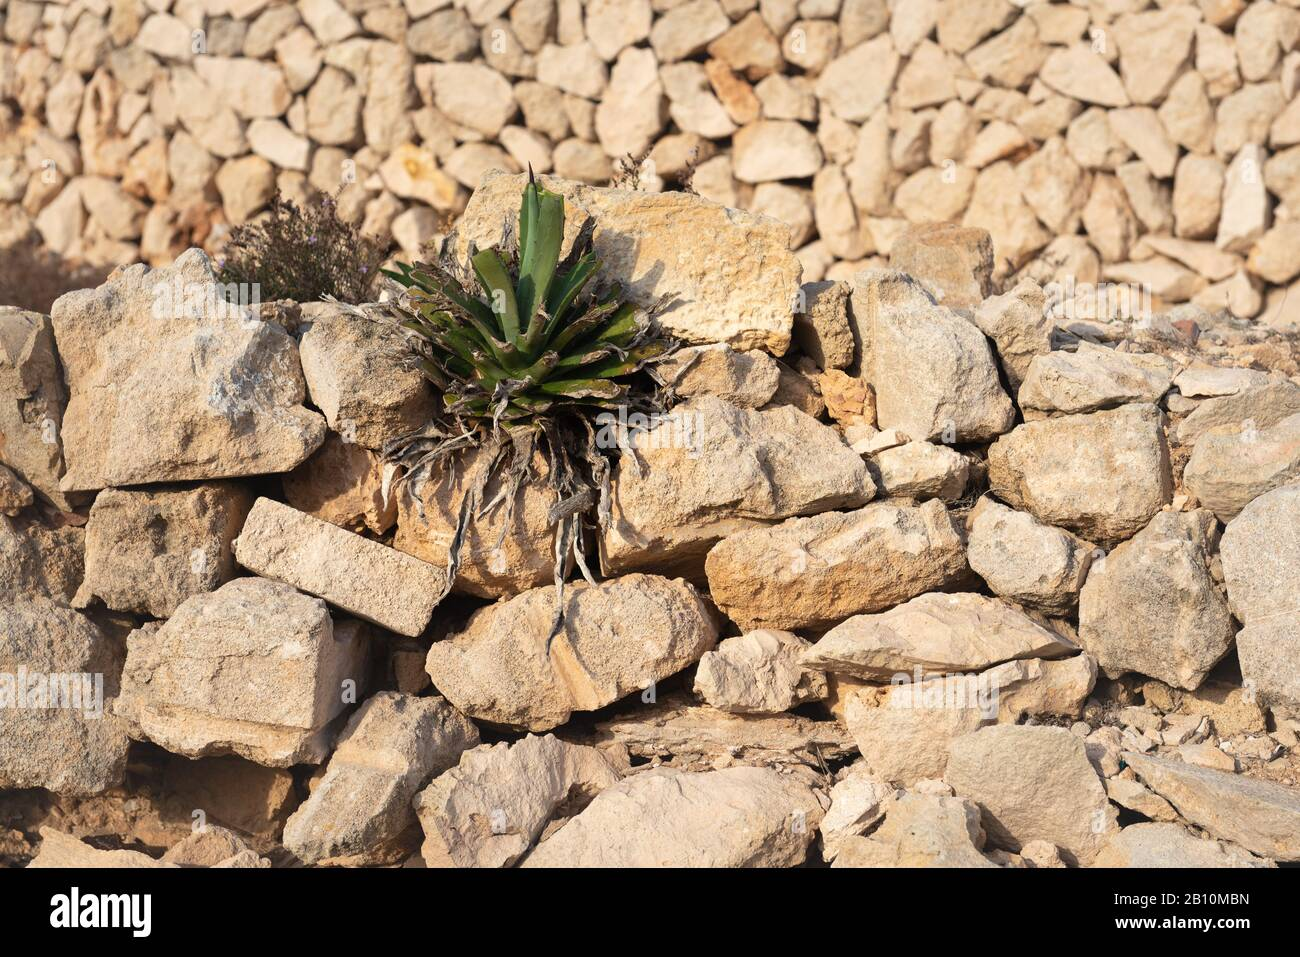 Plant Growing On The Rocks Succulent Plant In A Desert Setting Stock Photo Alamy